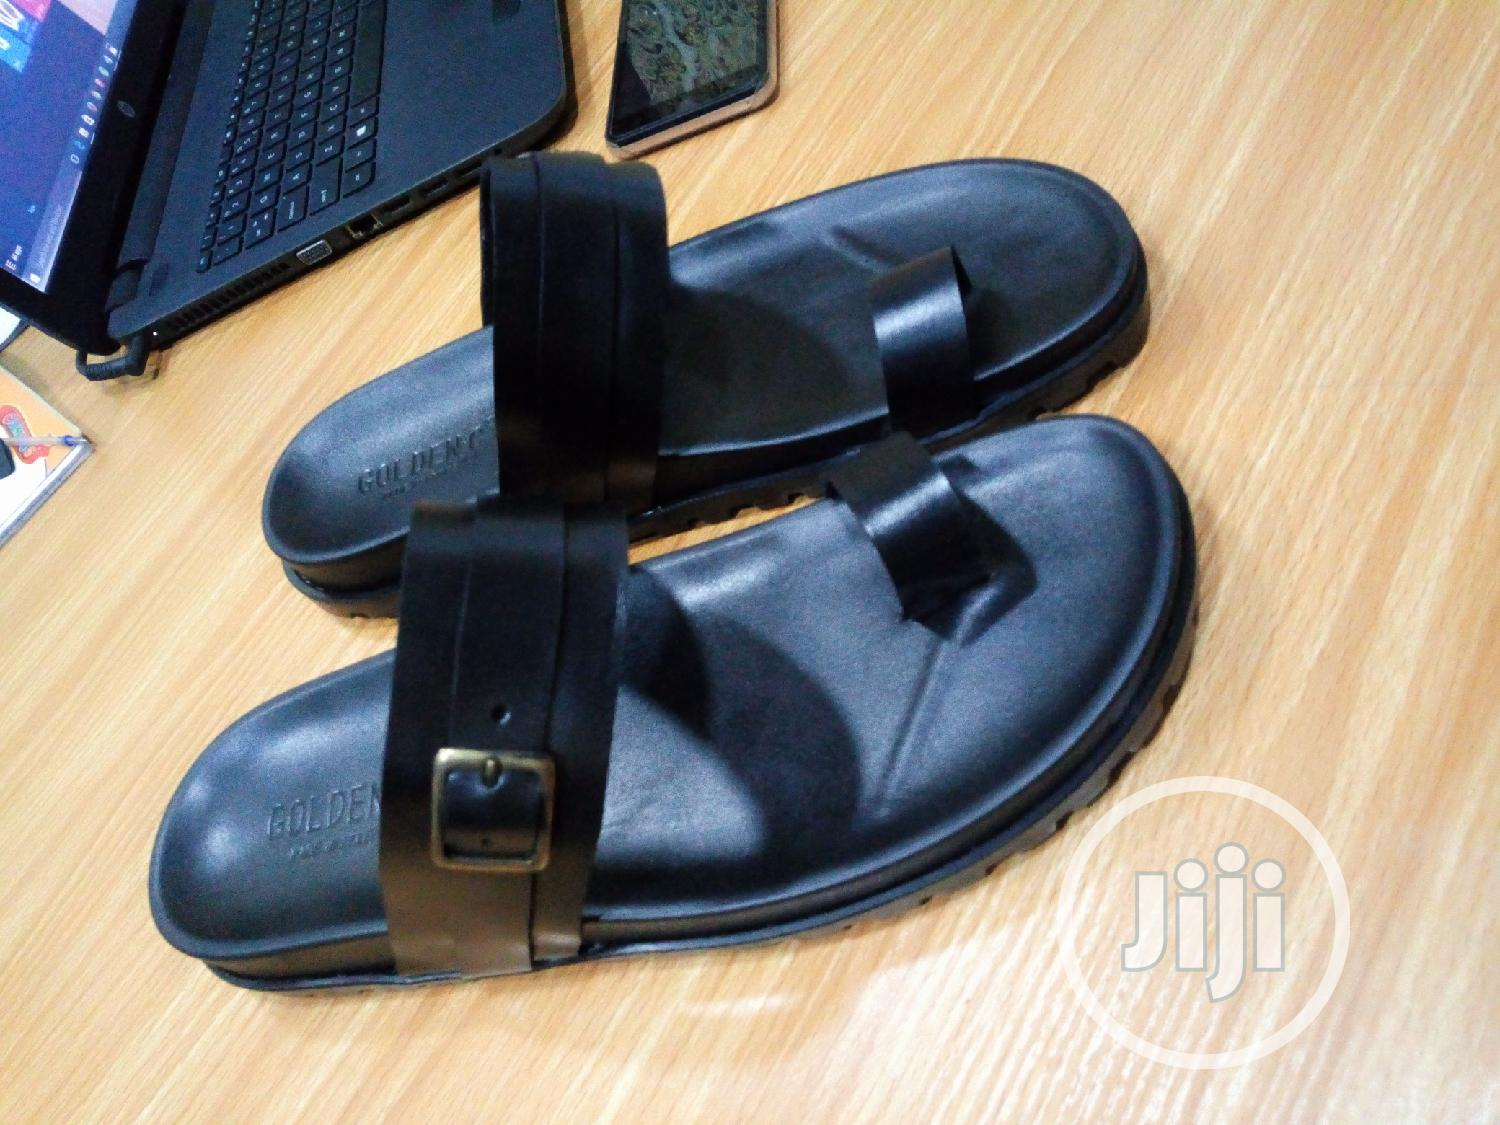 1st Class Brown Leather Palm, Slip On, Slippers, Sandals | Shoes for sale in Mushin, Lagos State, Nigeria